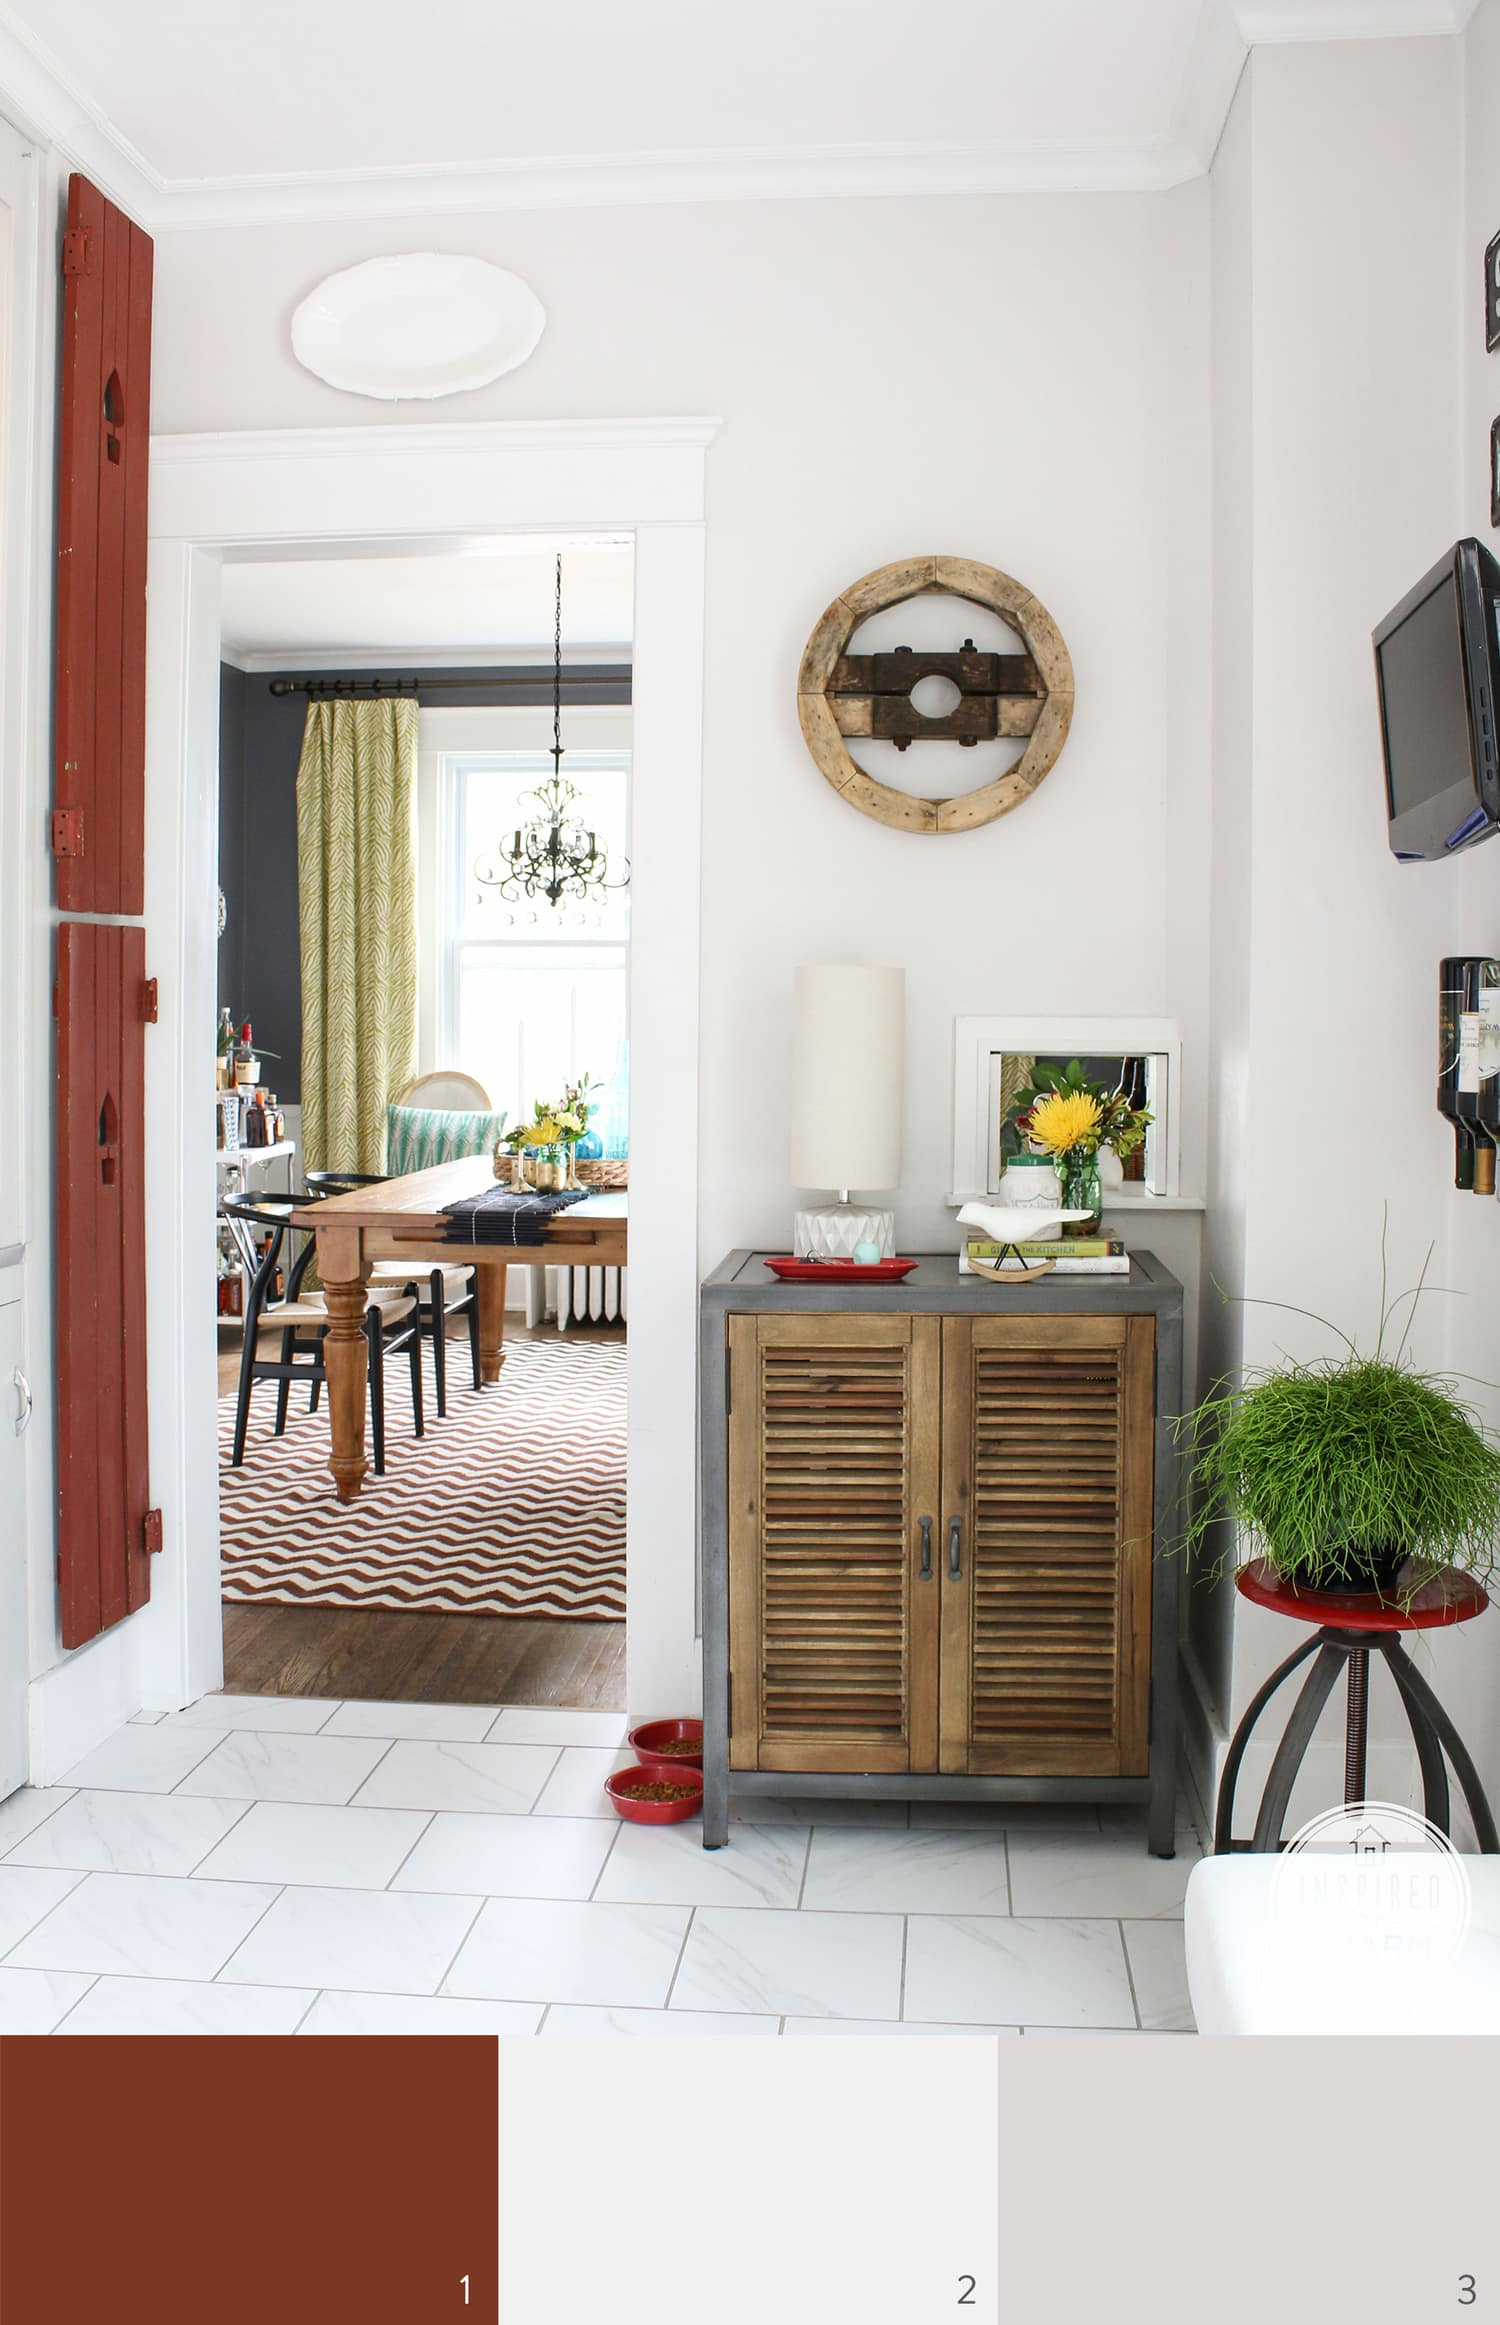 Sherwin Williams Living Room Inspired By Charm Paint Colors Inspired By Charm